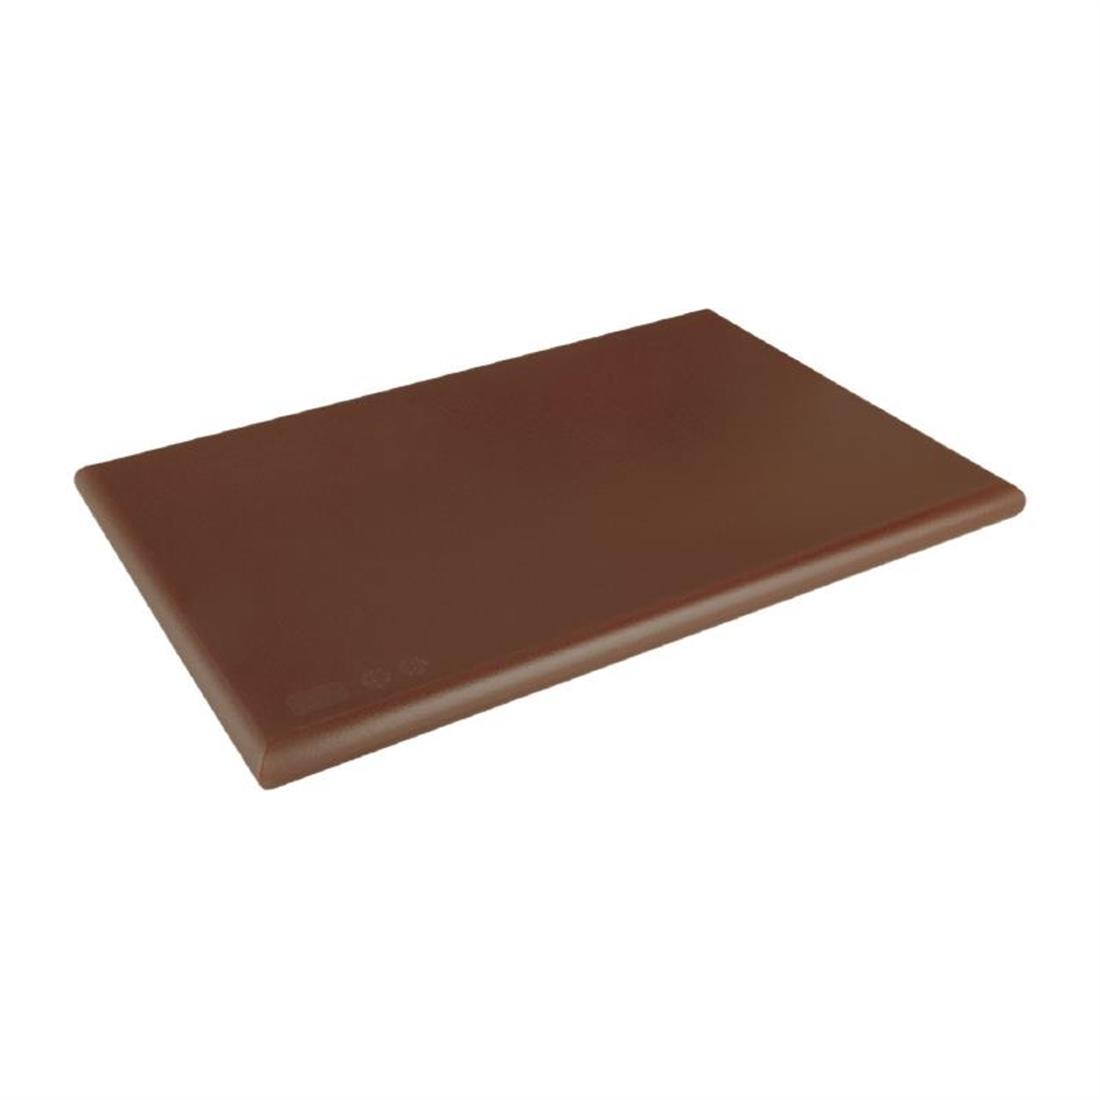 Hygiplas Extra Thick High Density Brown Chopping Board Standard